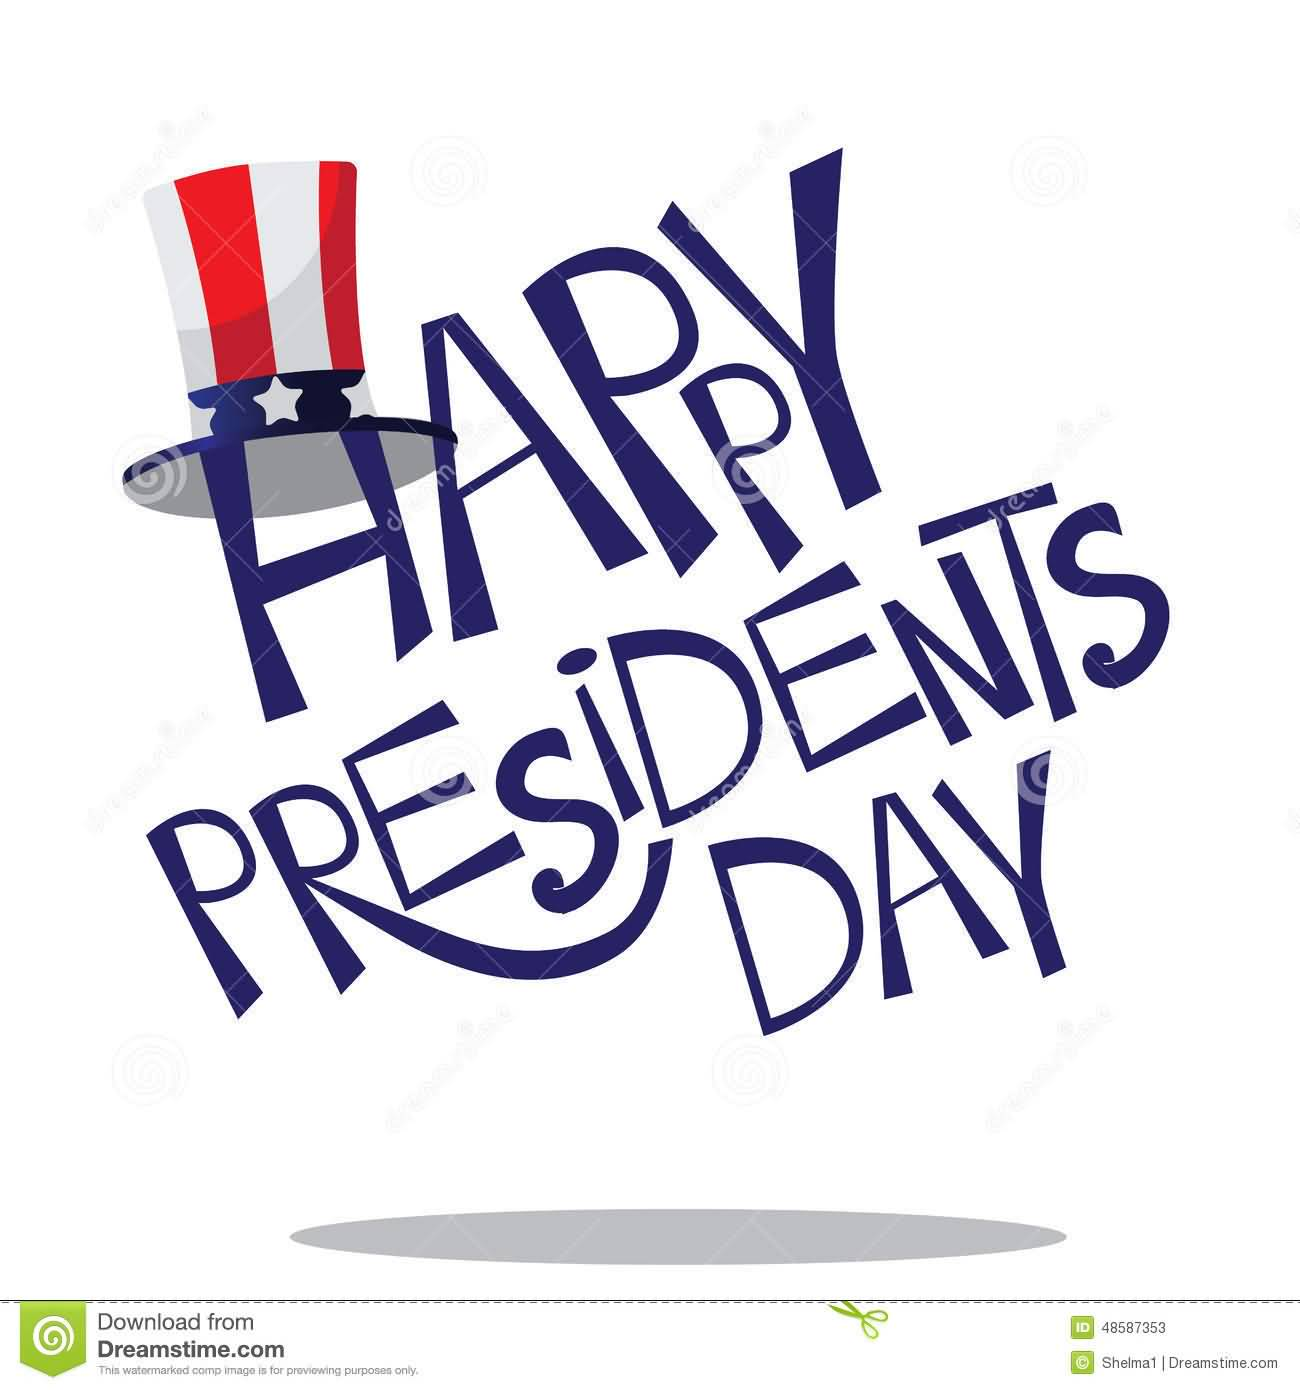 50 Best Presidents Day 2017 Wish Pictures.